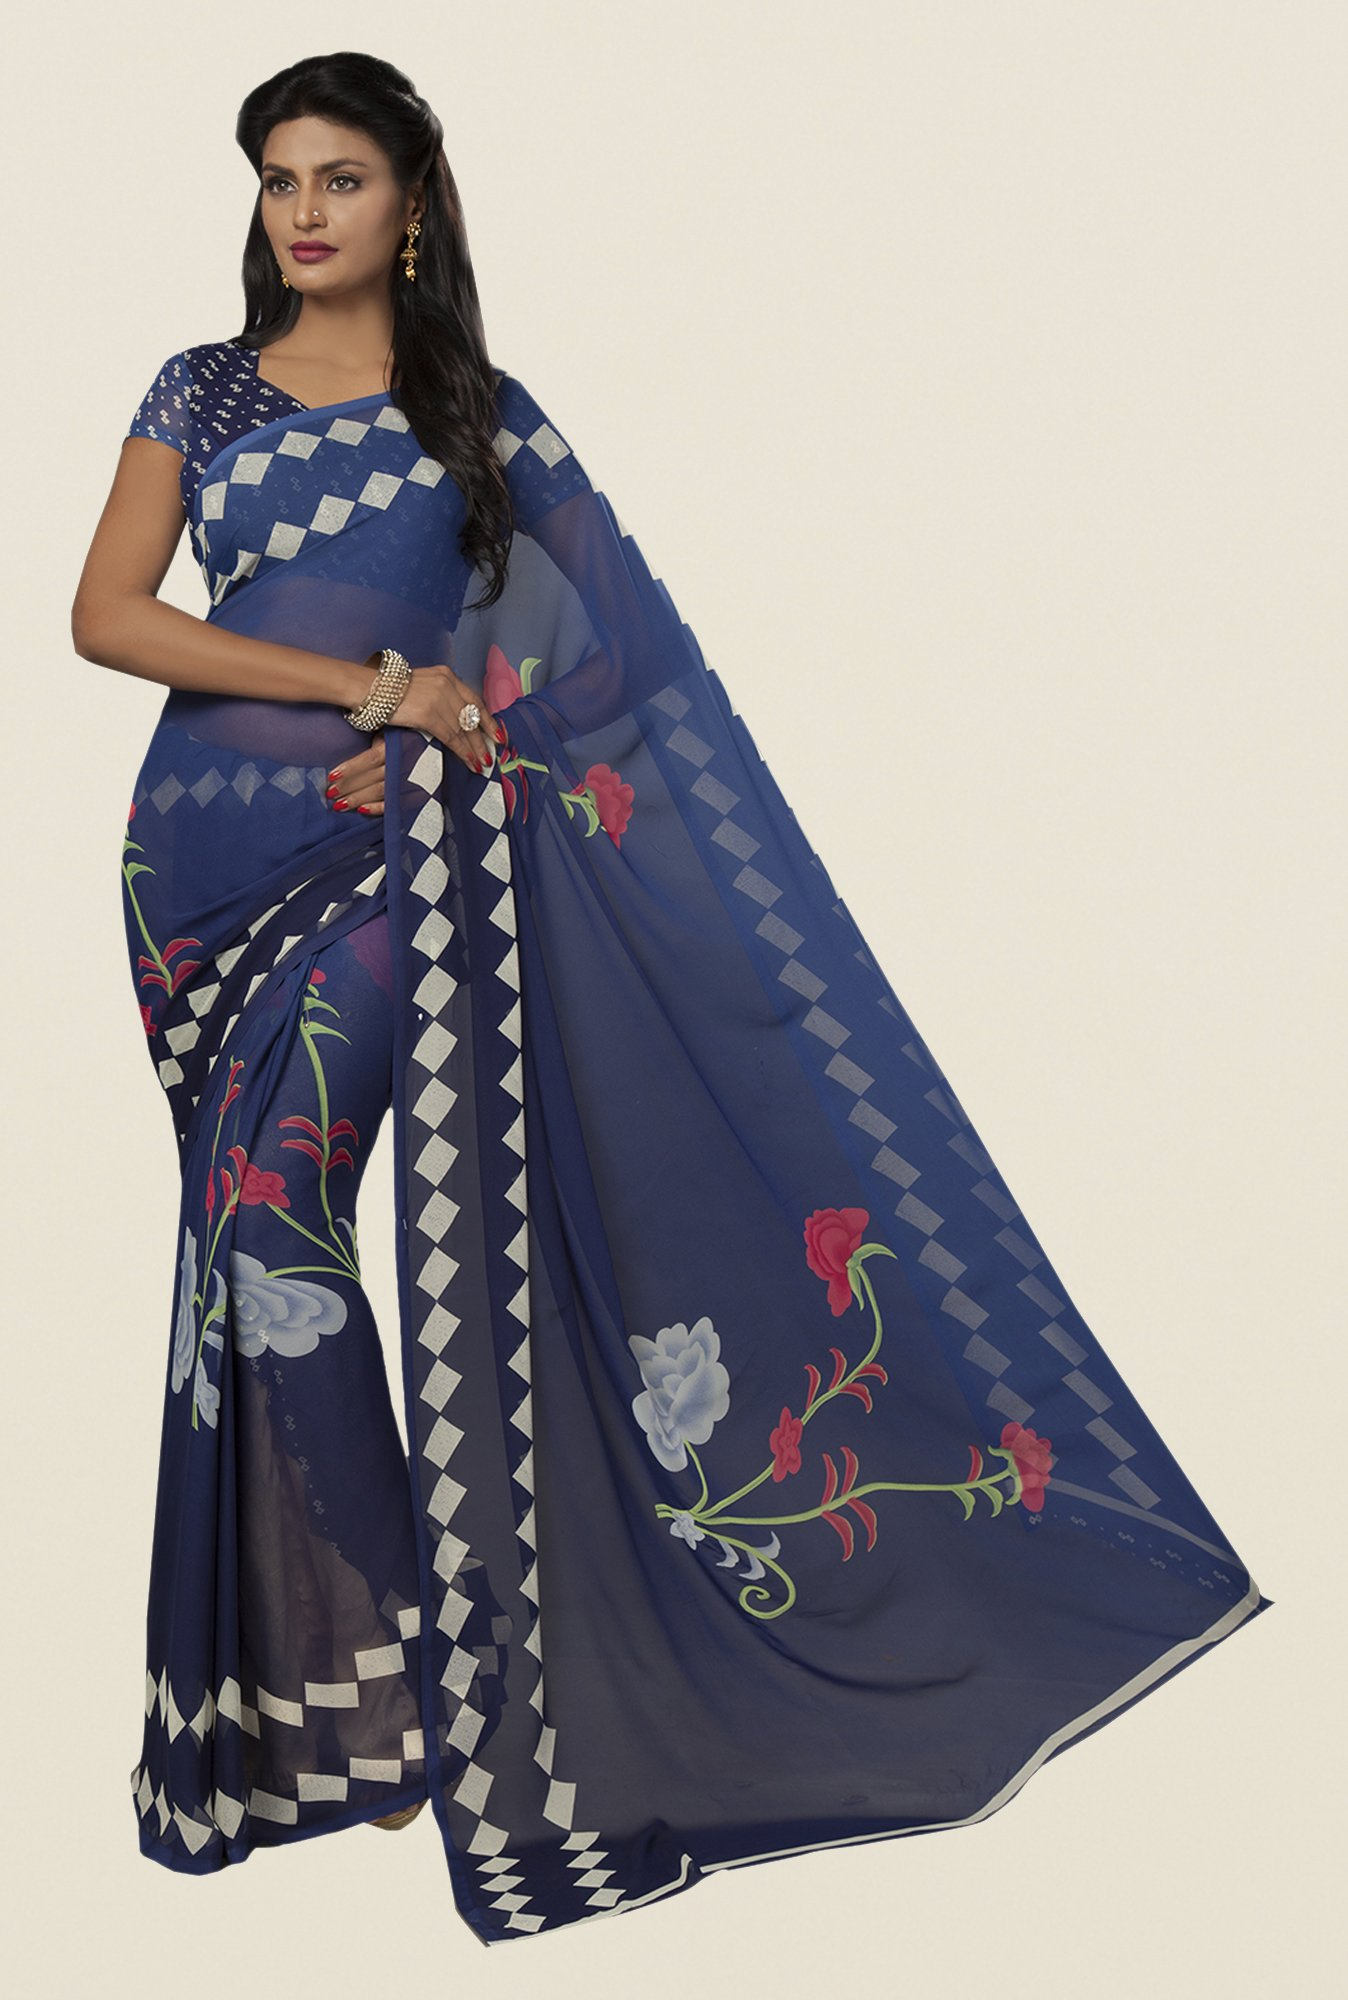 Ishin Navy Faux Georgette Floral Print Saree